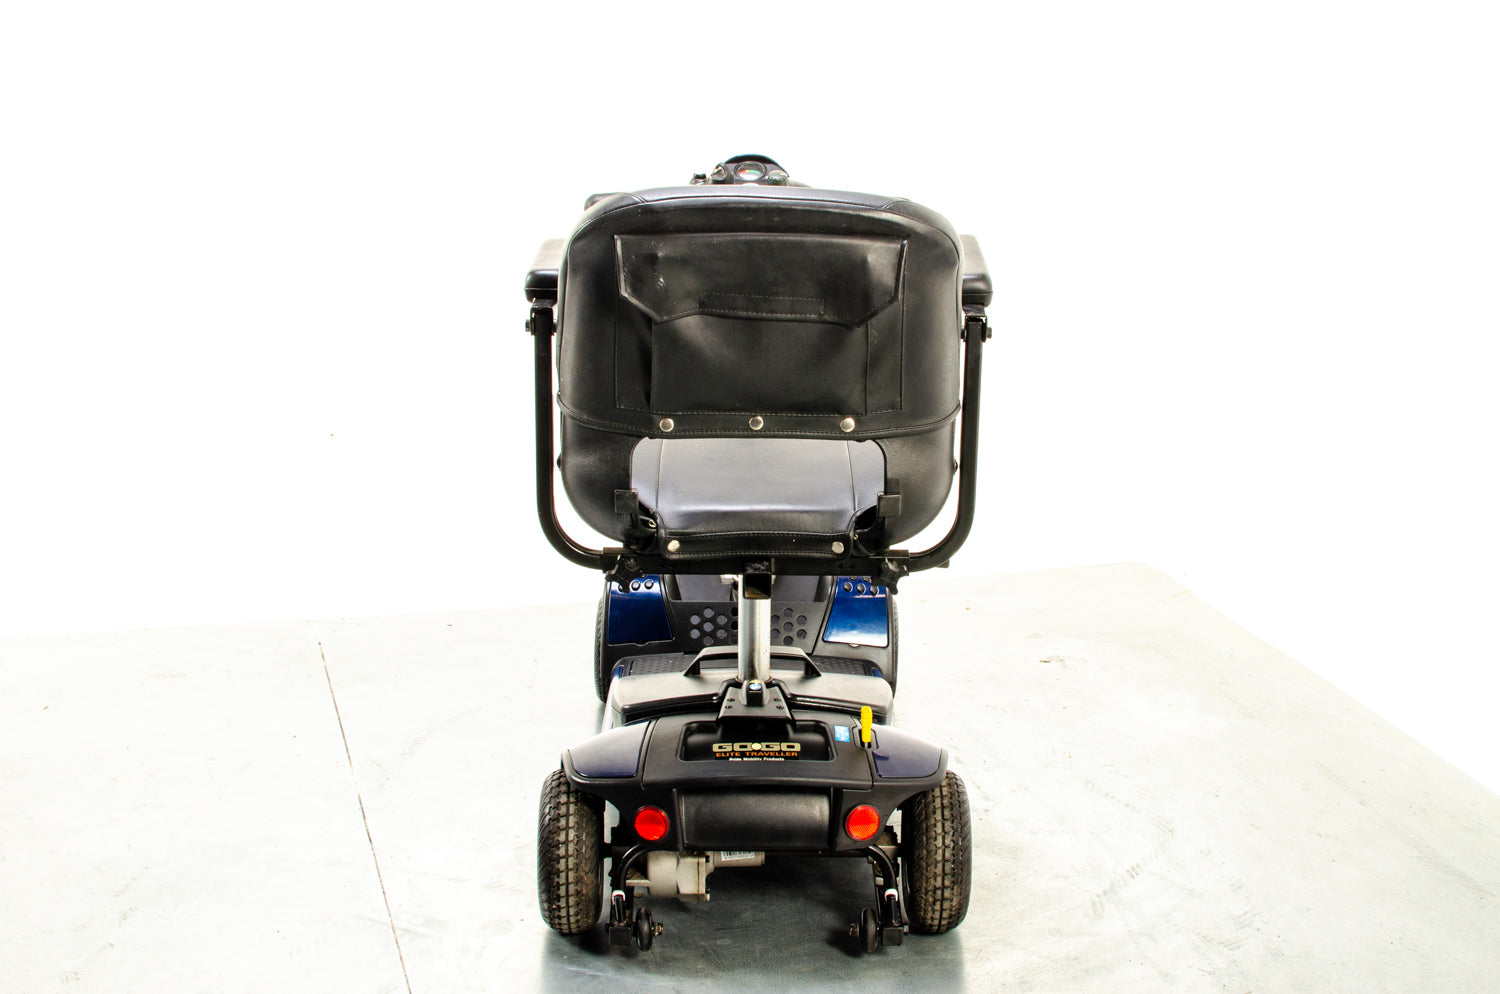 Pride Go-Go Elite Traveller Used Mobility Scooter Boot Transportable Lightweight Folding